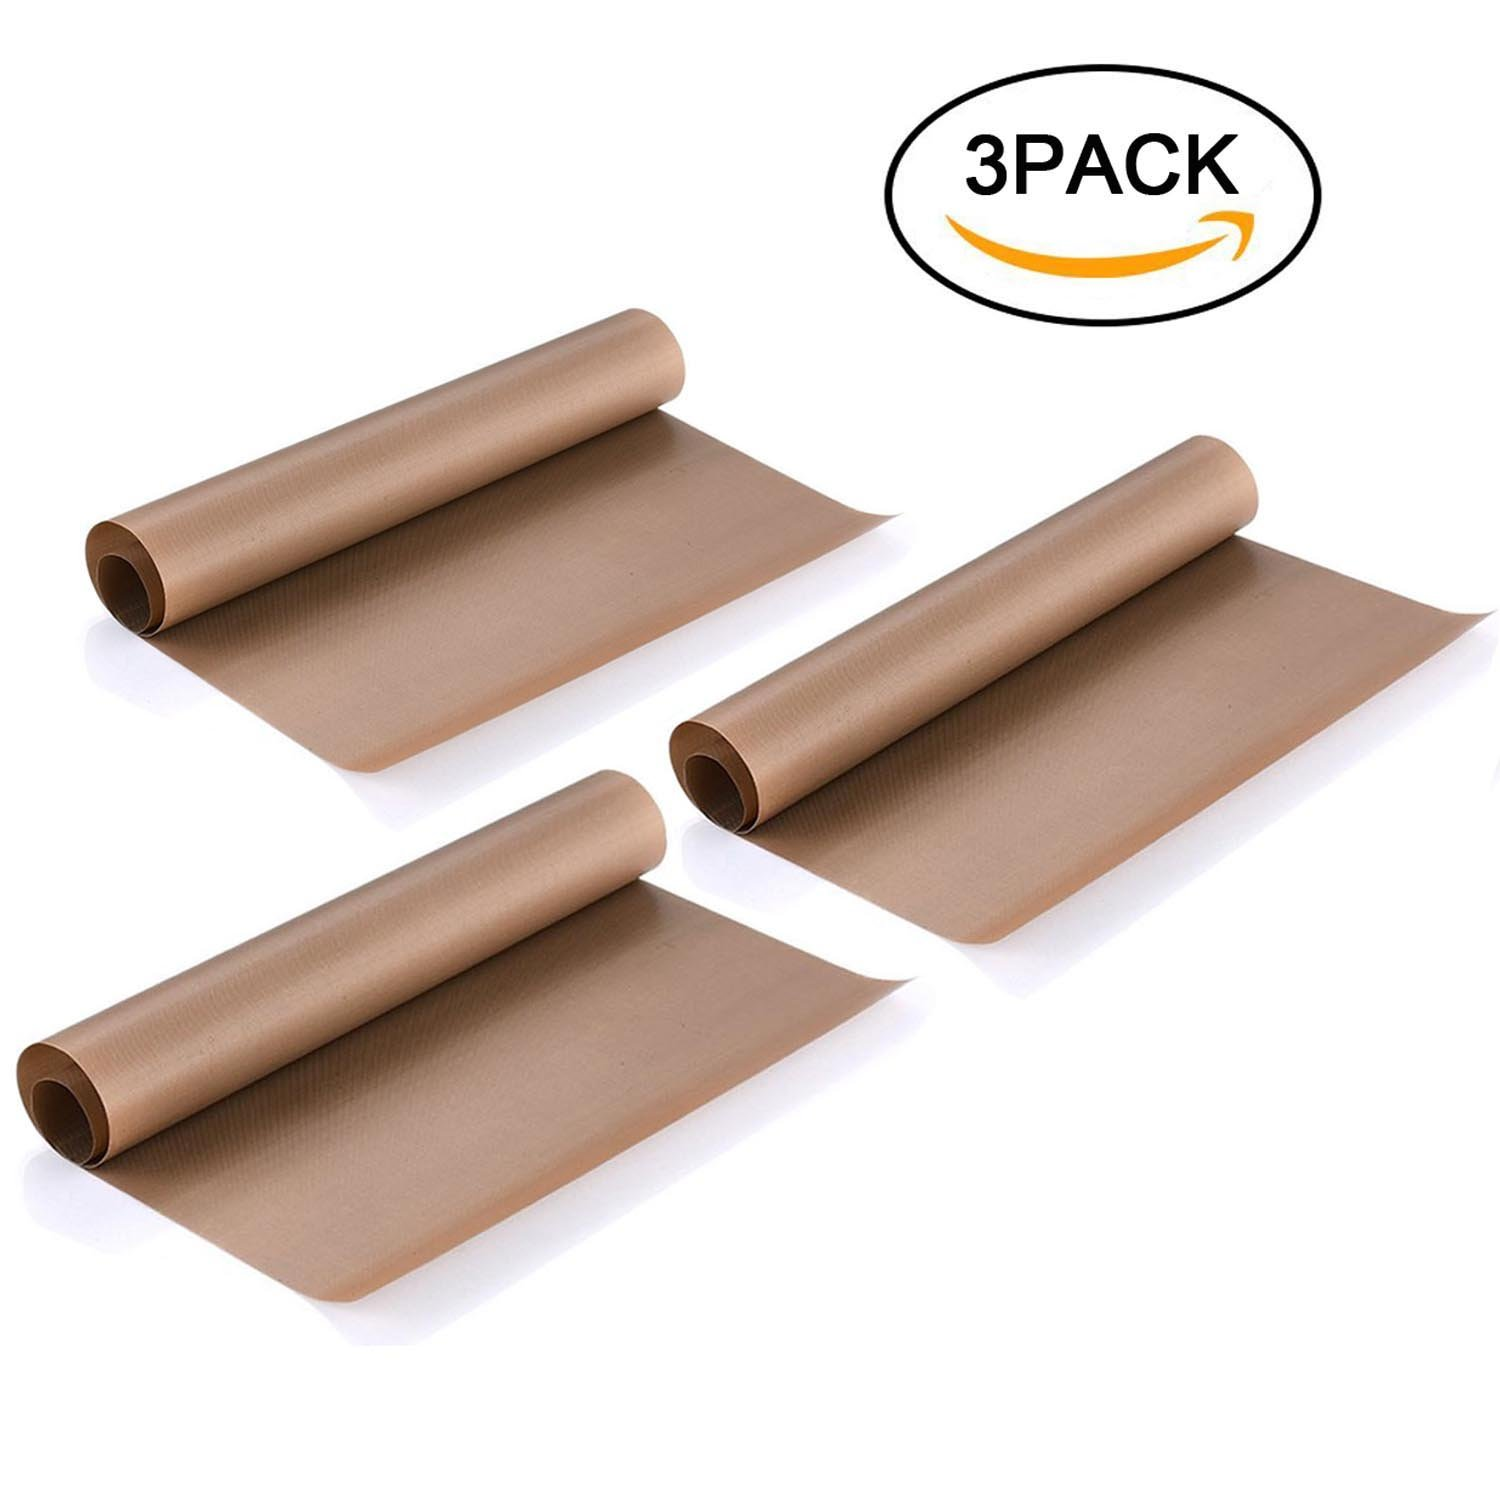 3 Pack PTFE Teflon Sheet 16 x 20 For Heat Press Transfer Sheet, Non Stick Heat Resistant Craft Mat, Vinyl Sheets for Sewing Ironing Clothes Protector, Paints, Crafting, Bakery, Barbecue grill mat, etc Amaxwon